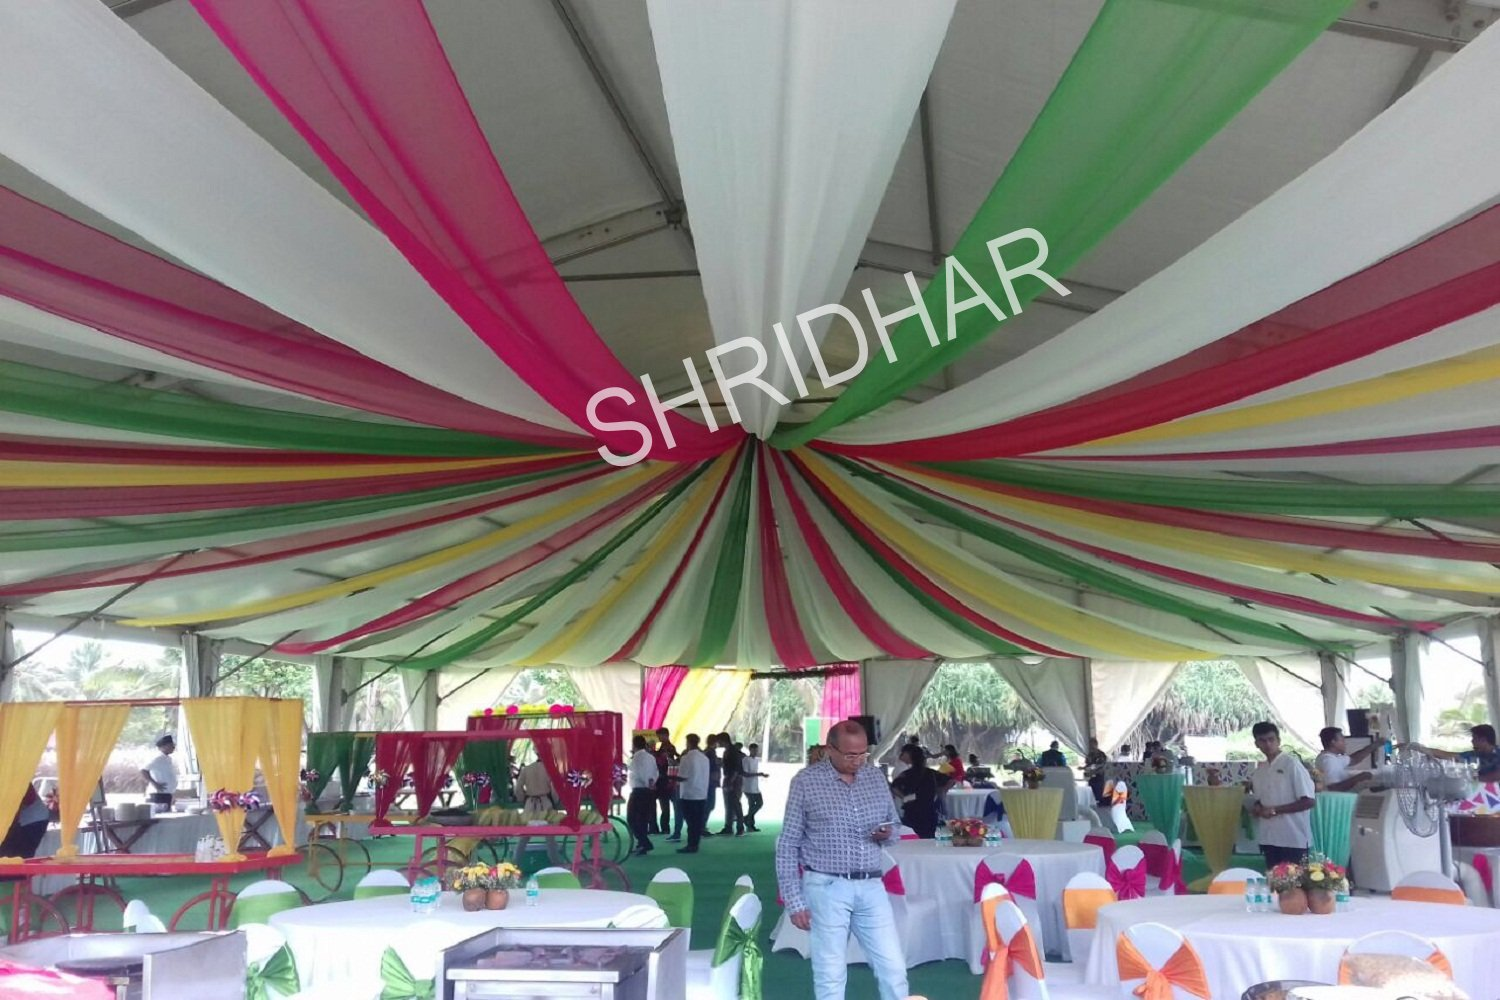 steel chair for tent house posture ball shridhar services supplier in bangalore karnataka tents canopies shamianas tables chairs carpets rent weddings